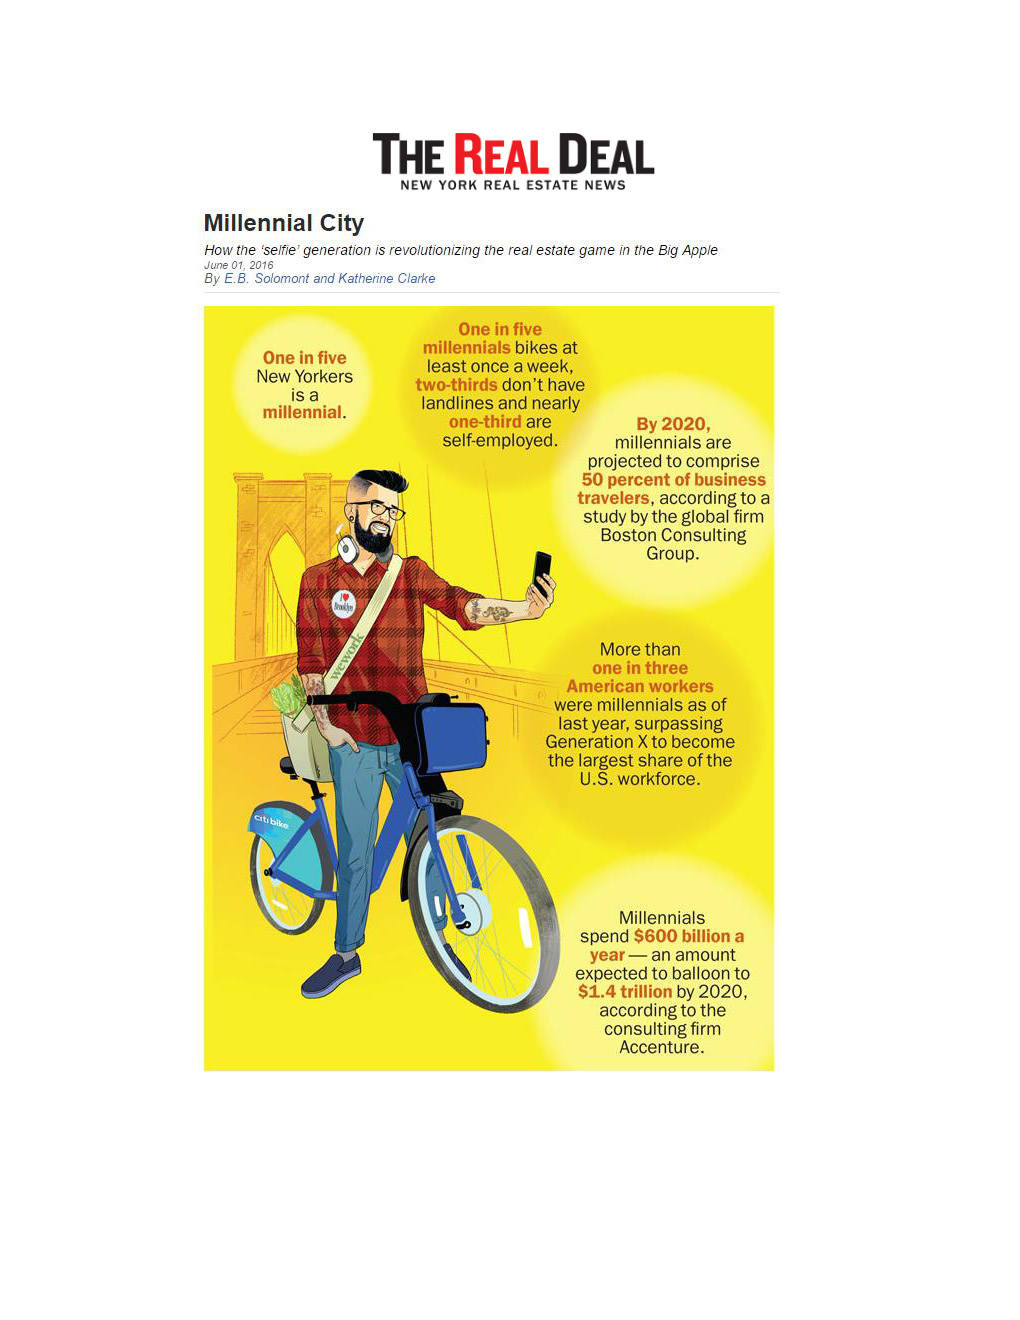 The Real Deal - Milennial City 6.1.16_Page_01